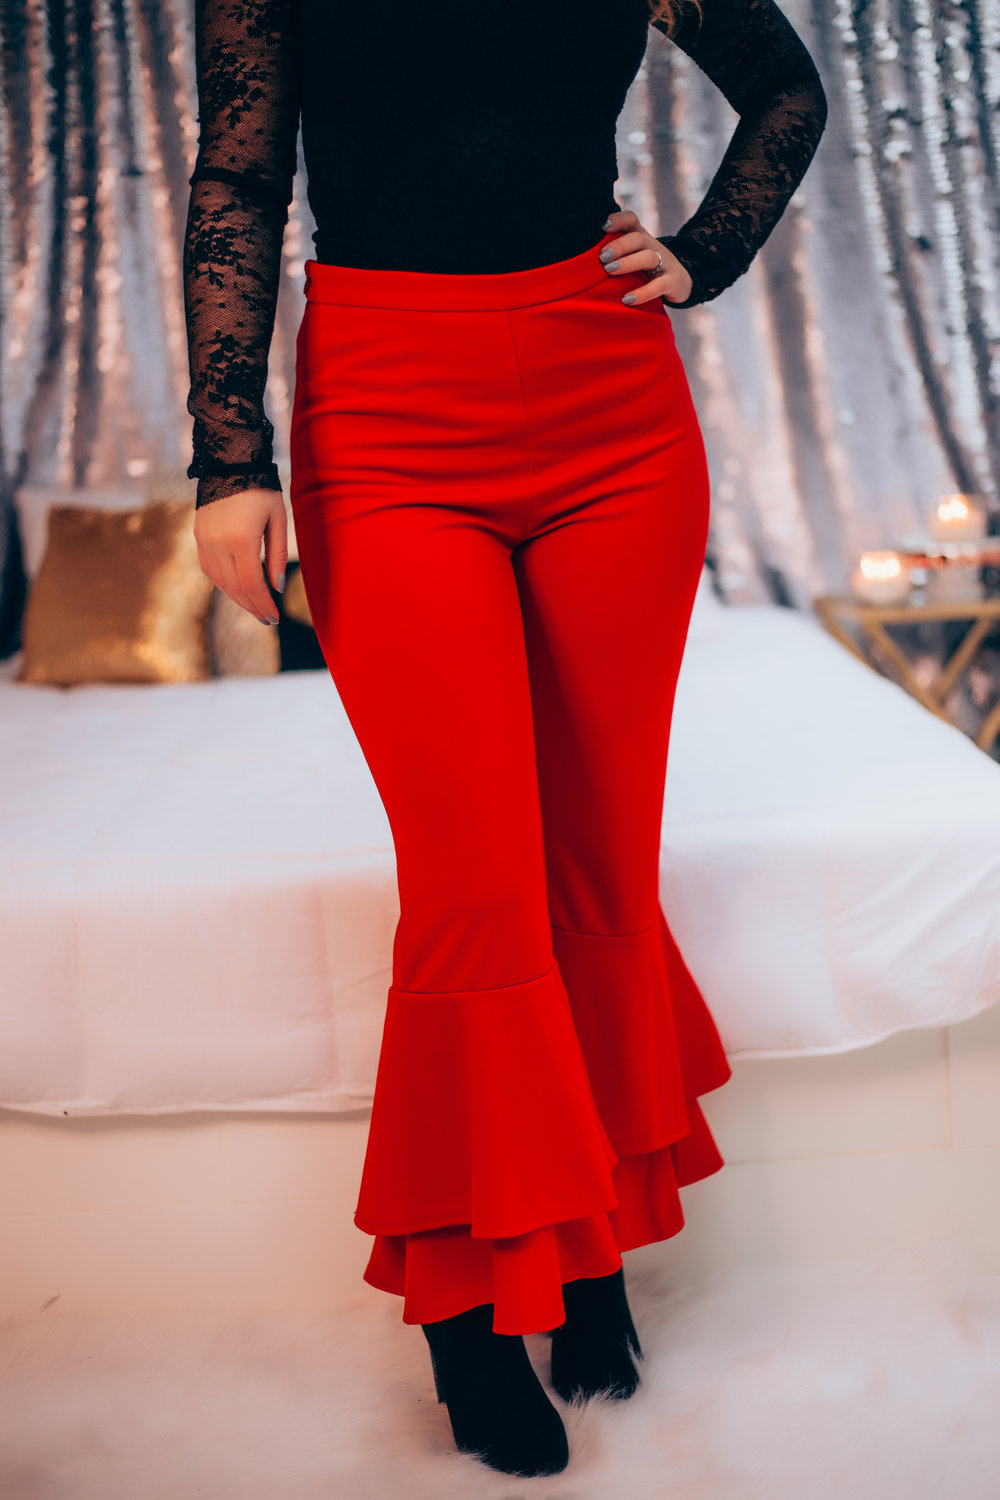 Black friday sale haul from shein holiday style fashion Christmas outfit ideas-21.jpg